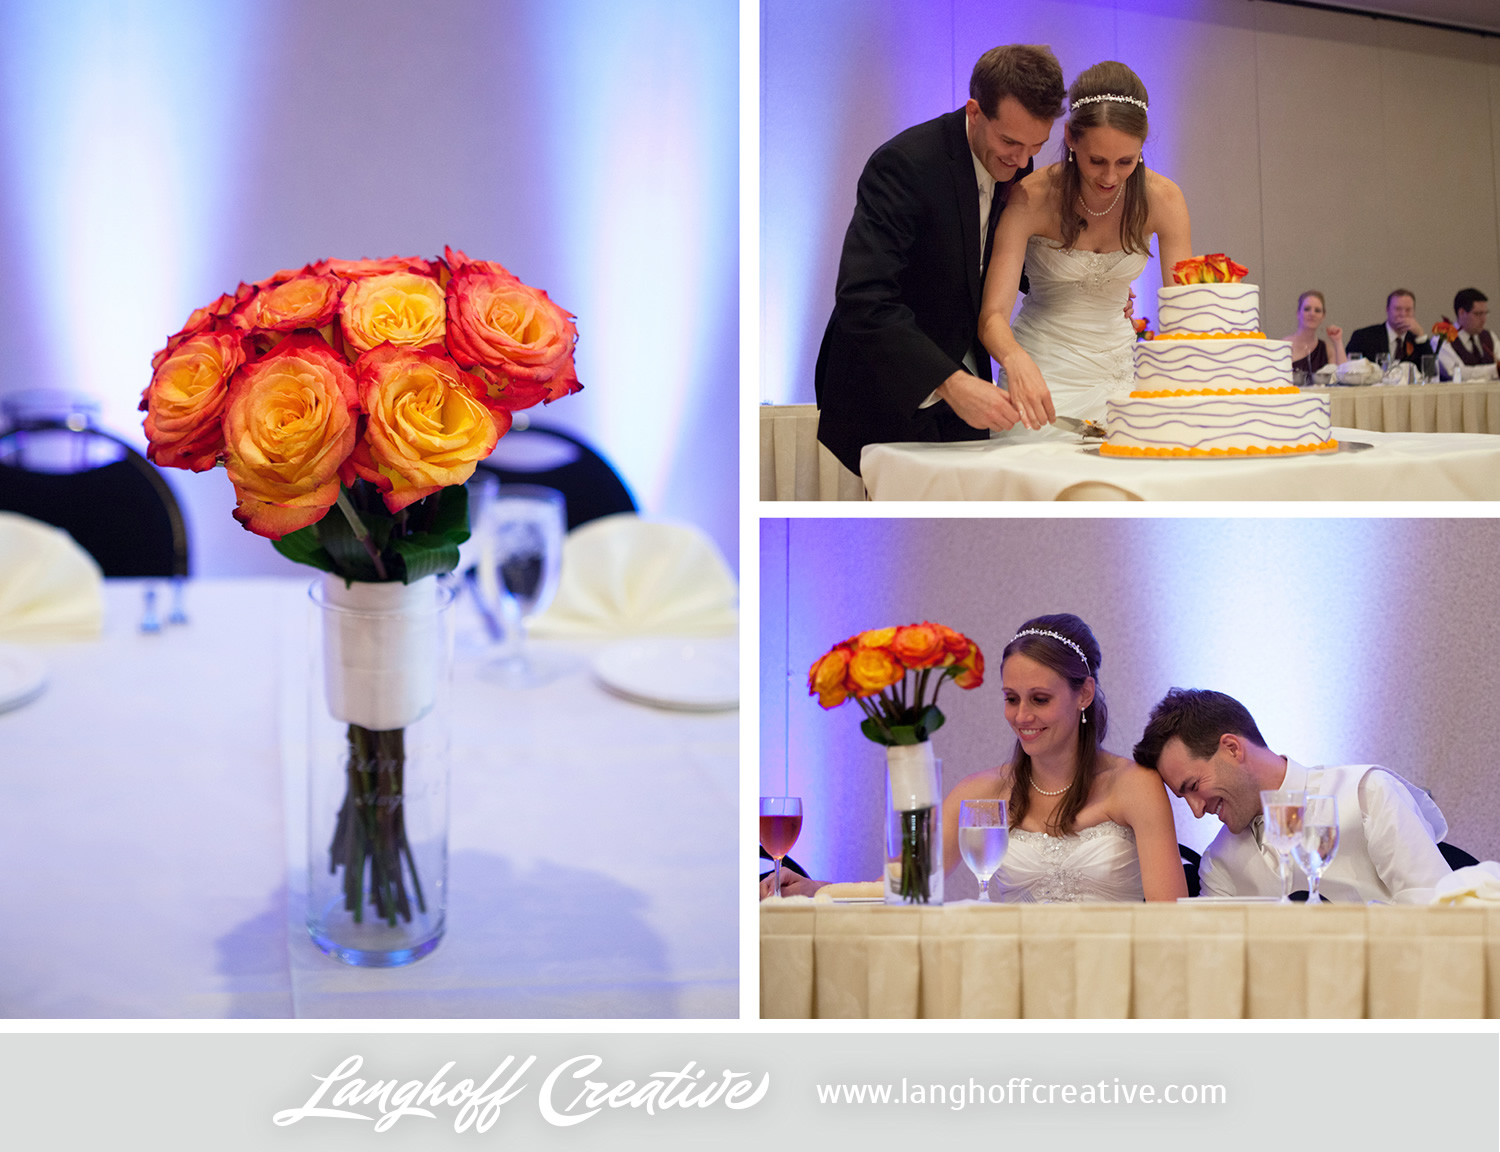 PlainfieldWedding-2013-LanghoffCreative-MattErin-22-photo.jpg